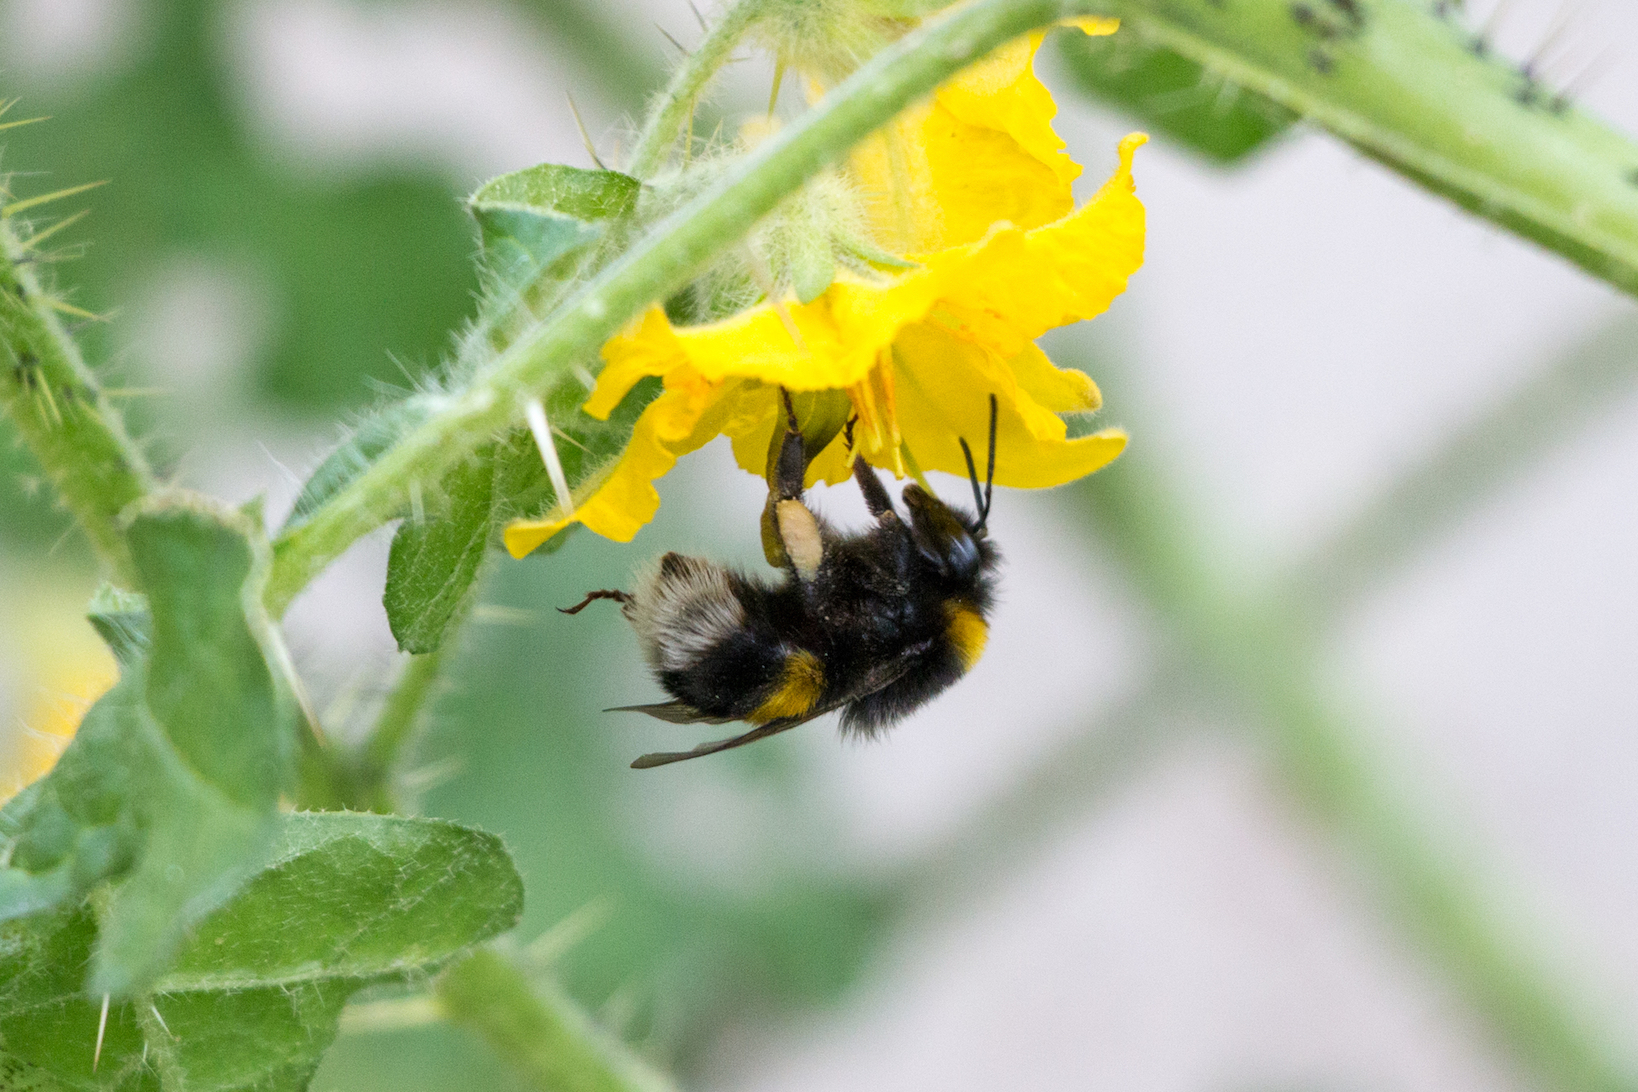 A new study from the University of Stirling has found that pesticides may interfere with a bumblebee's ability to buzz and collect pollen.